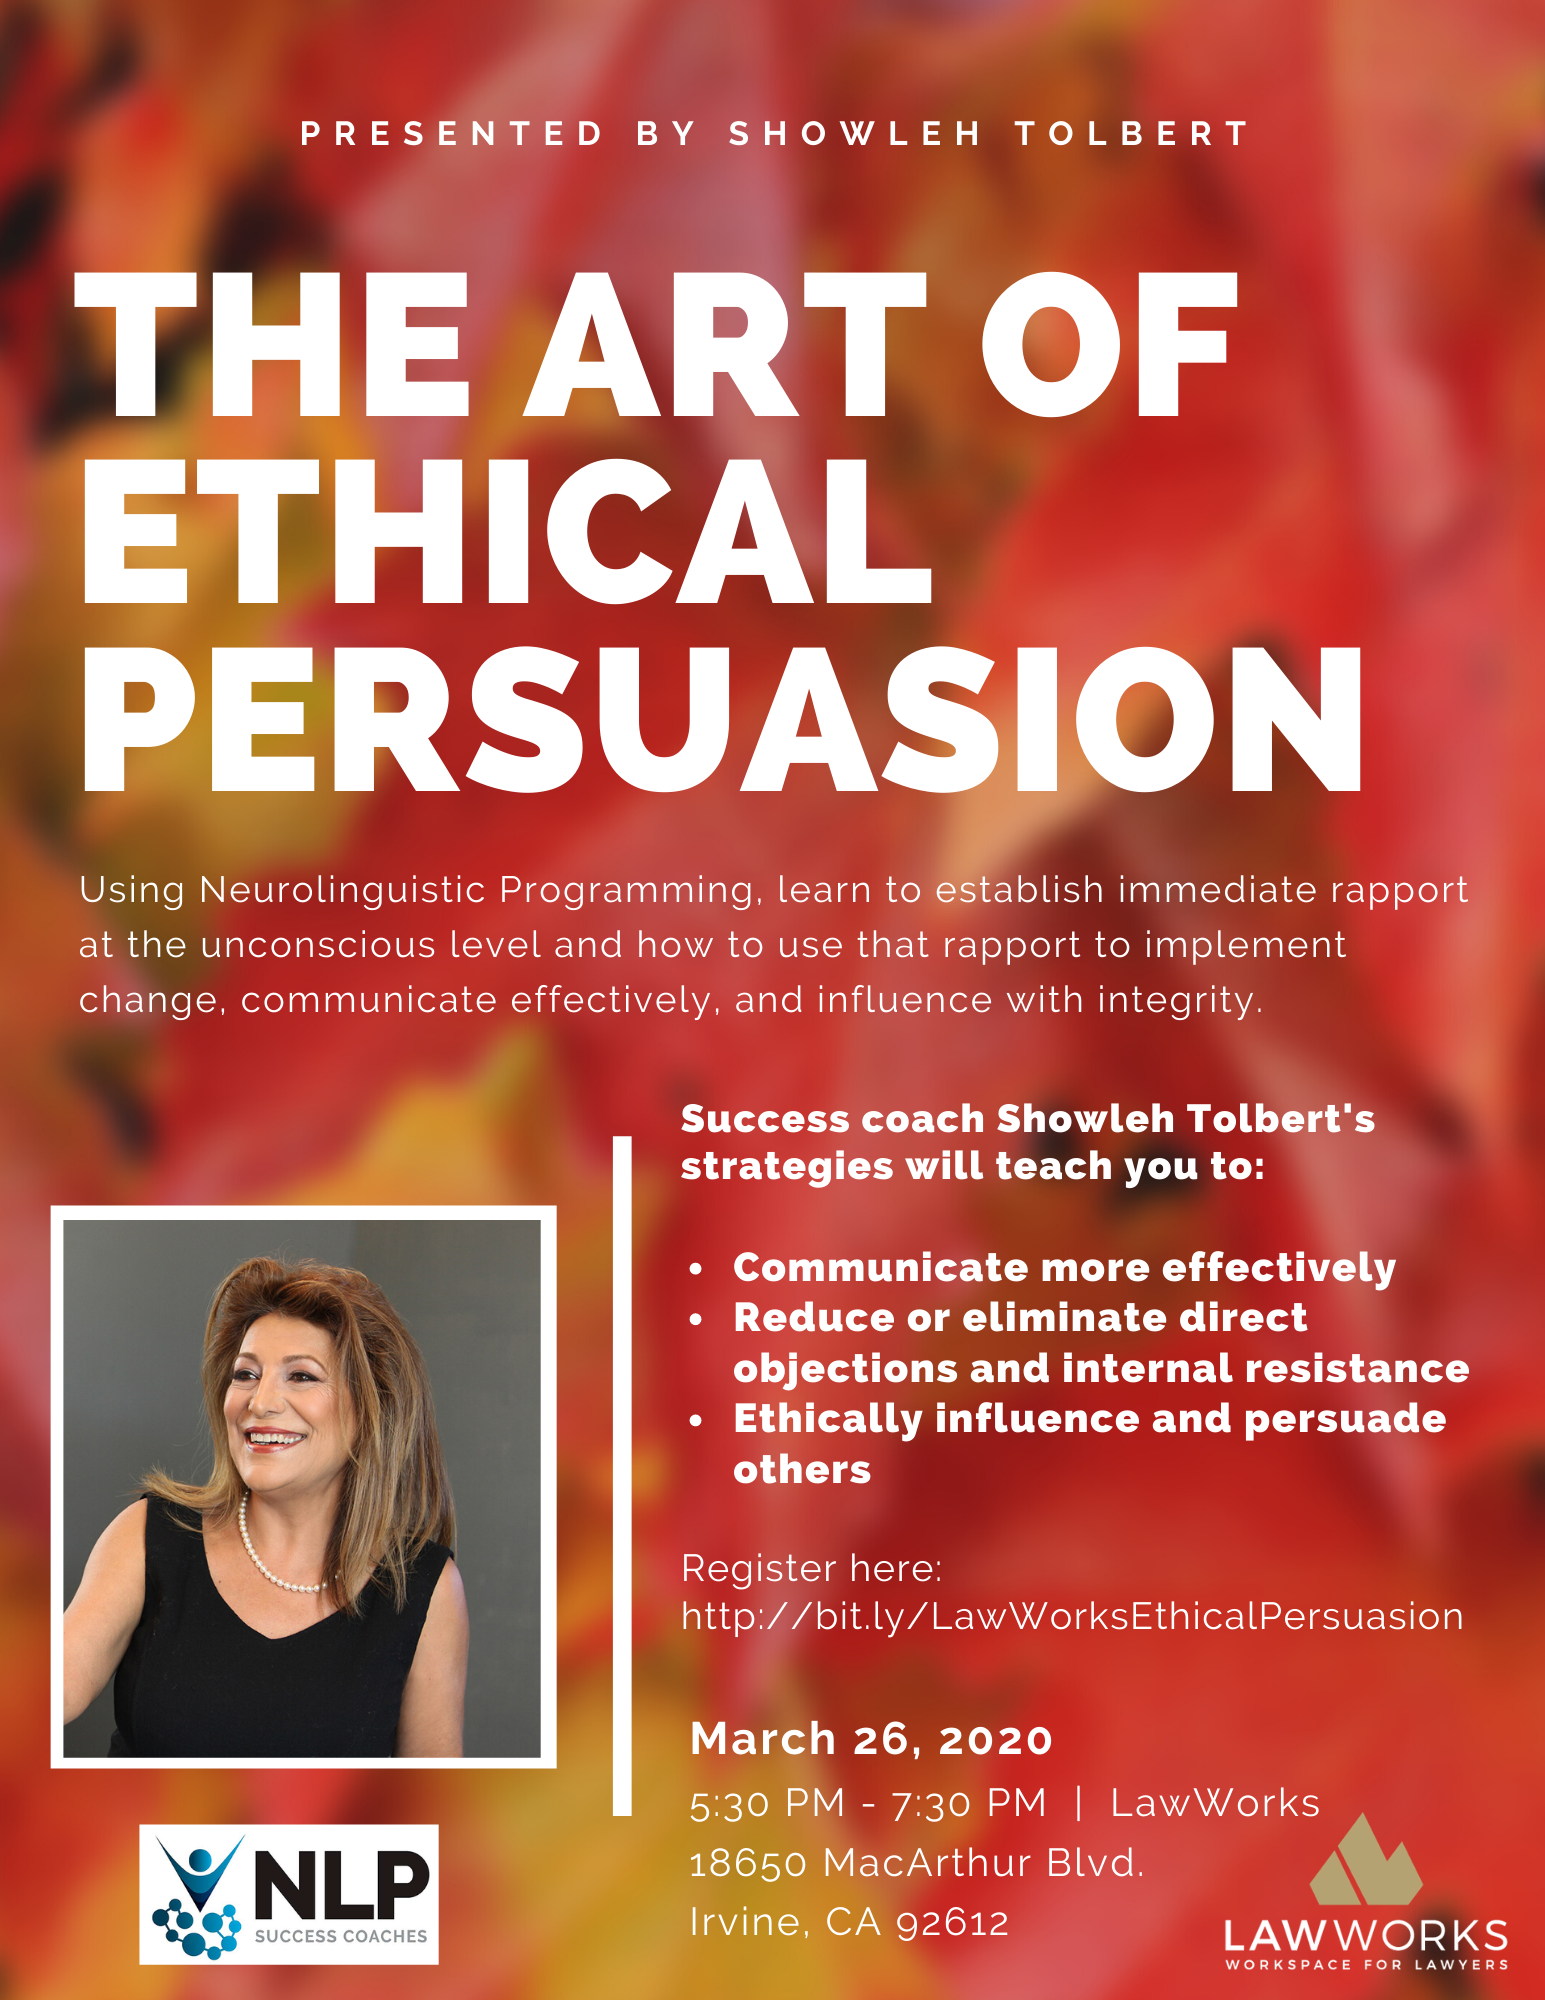 POSTPONED - The Art of Ethical Persuasion